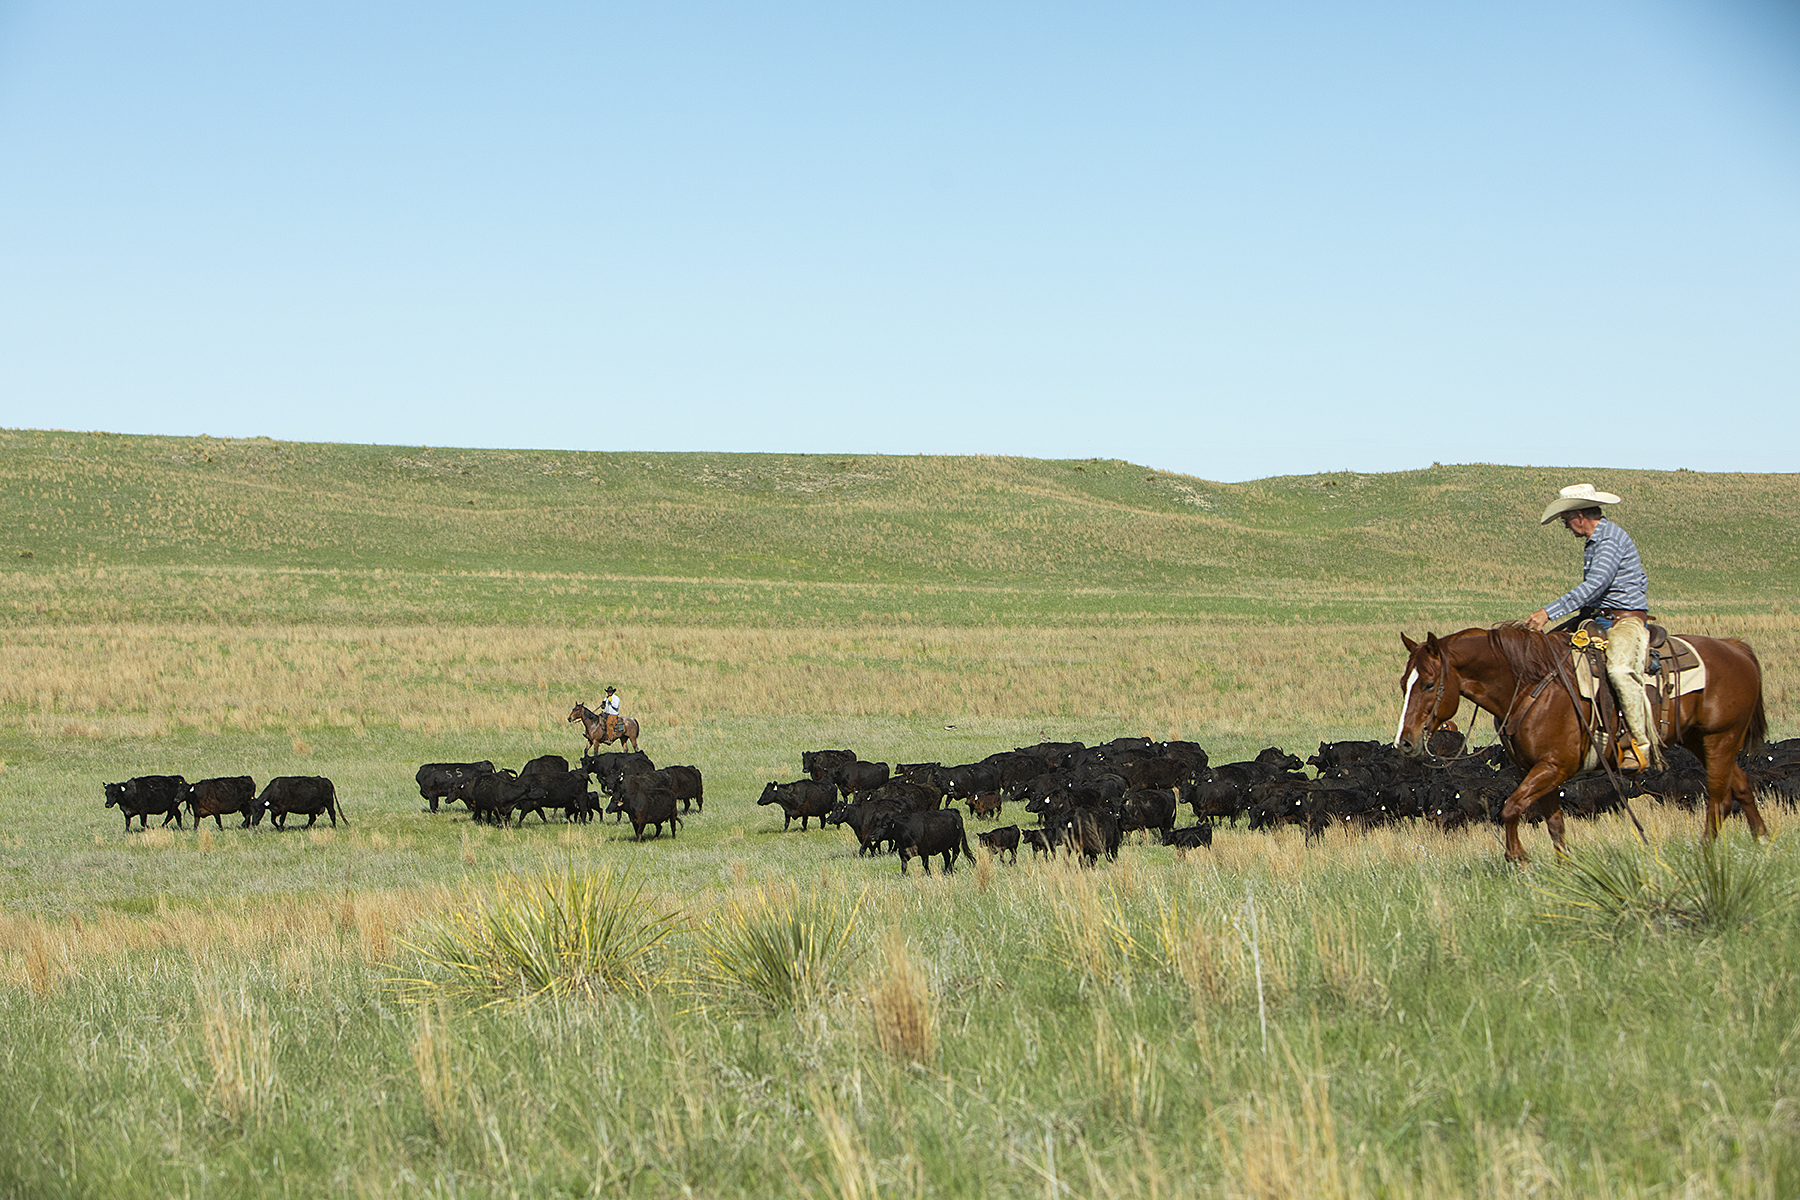 Grazing land is important to ranchers